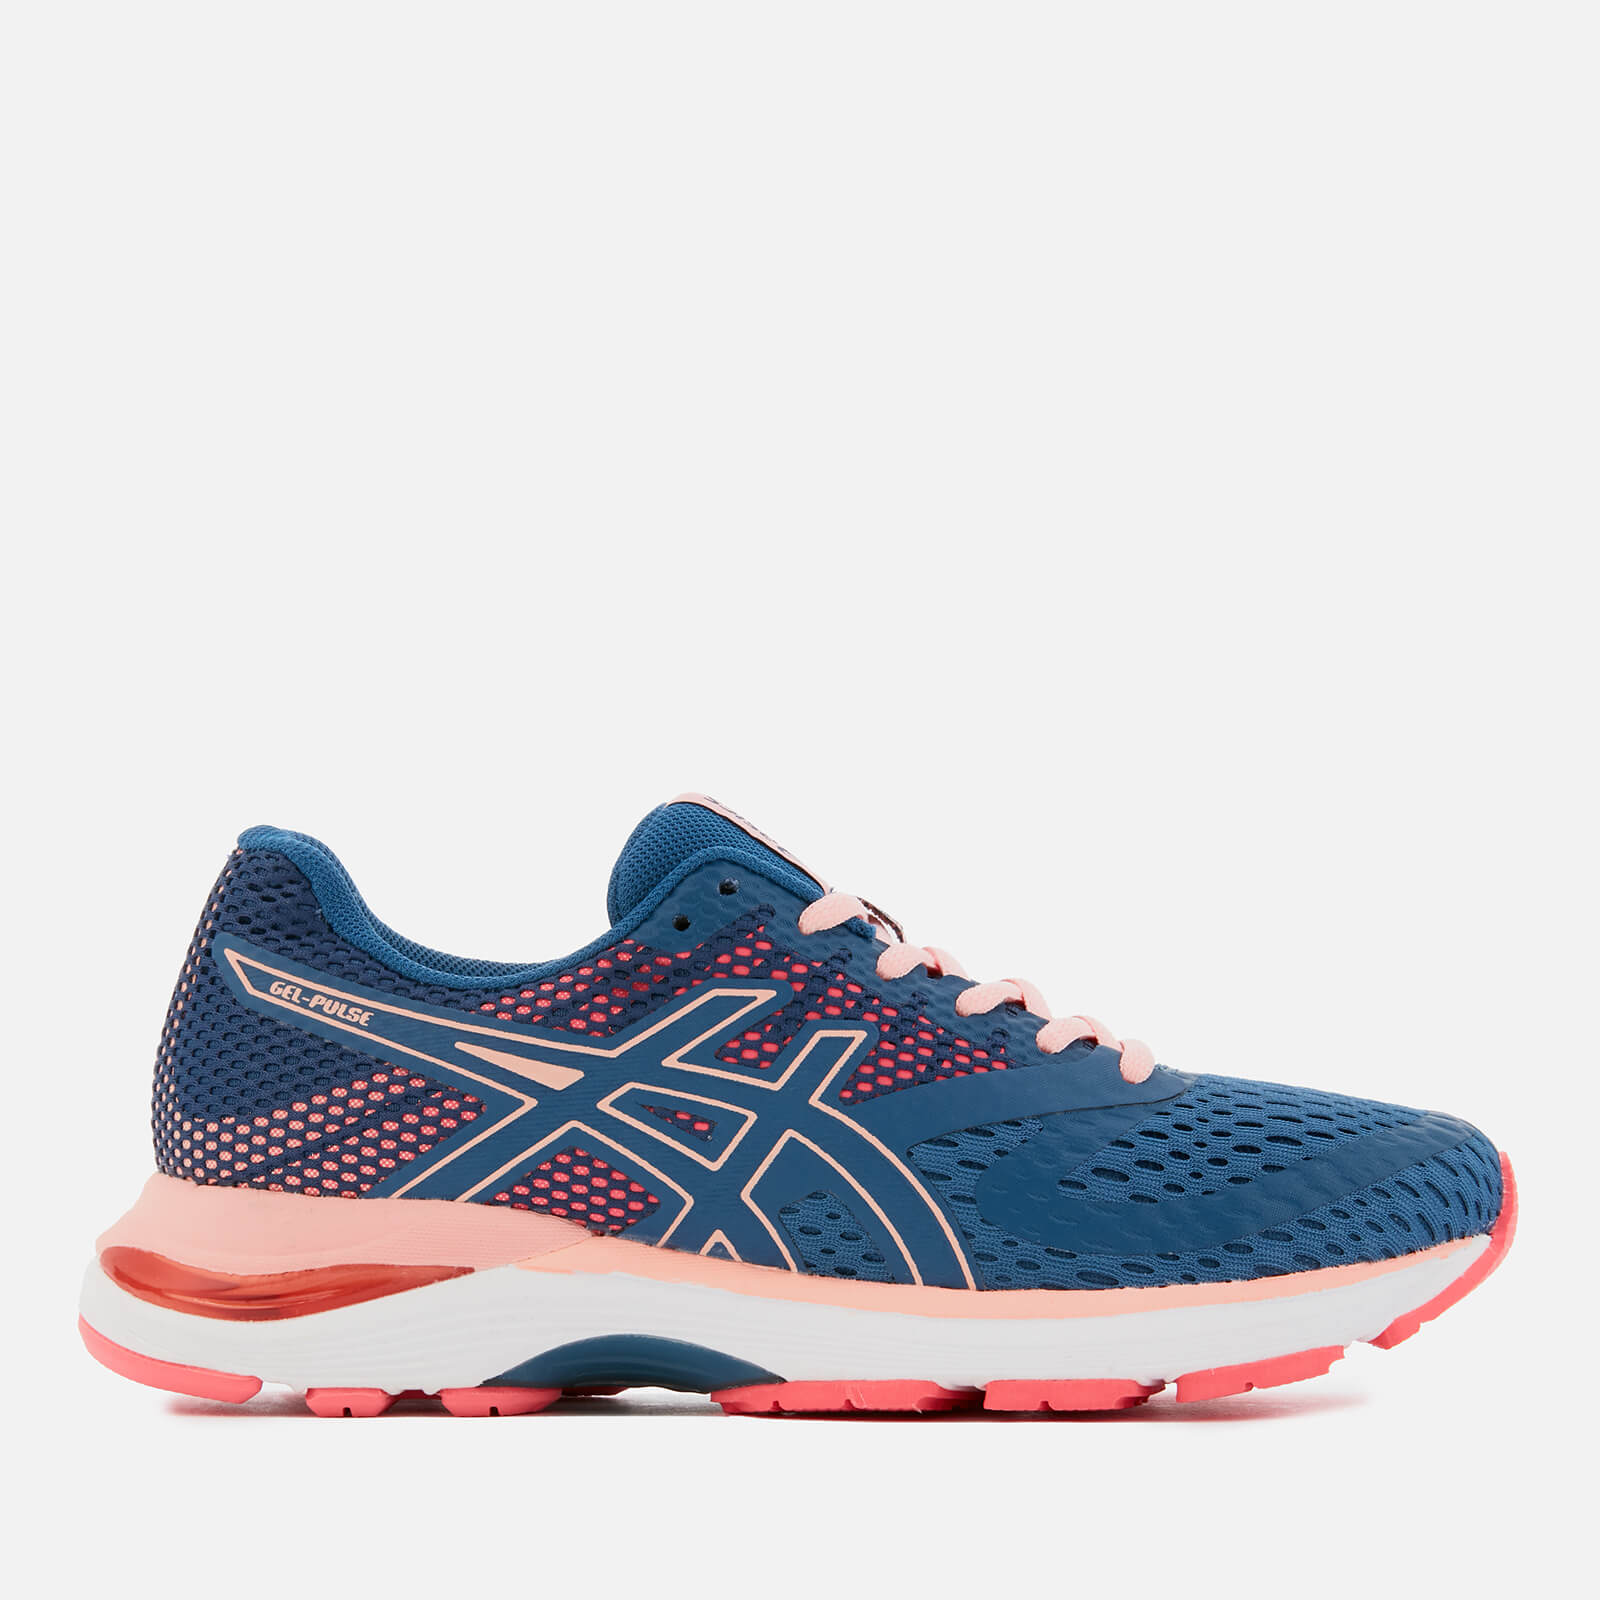 27ee91345a5 Asics Women s Running Gel Pulse 10 Trainers - Grand Shark Baked Pink Sports    Leisure